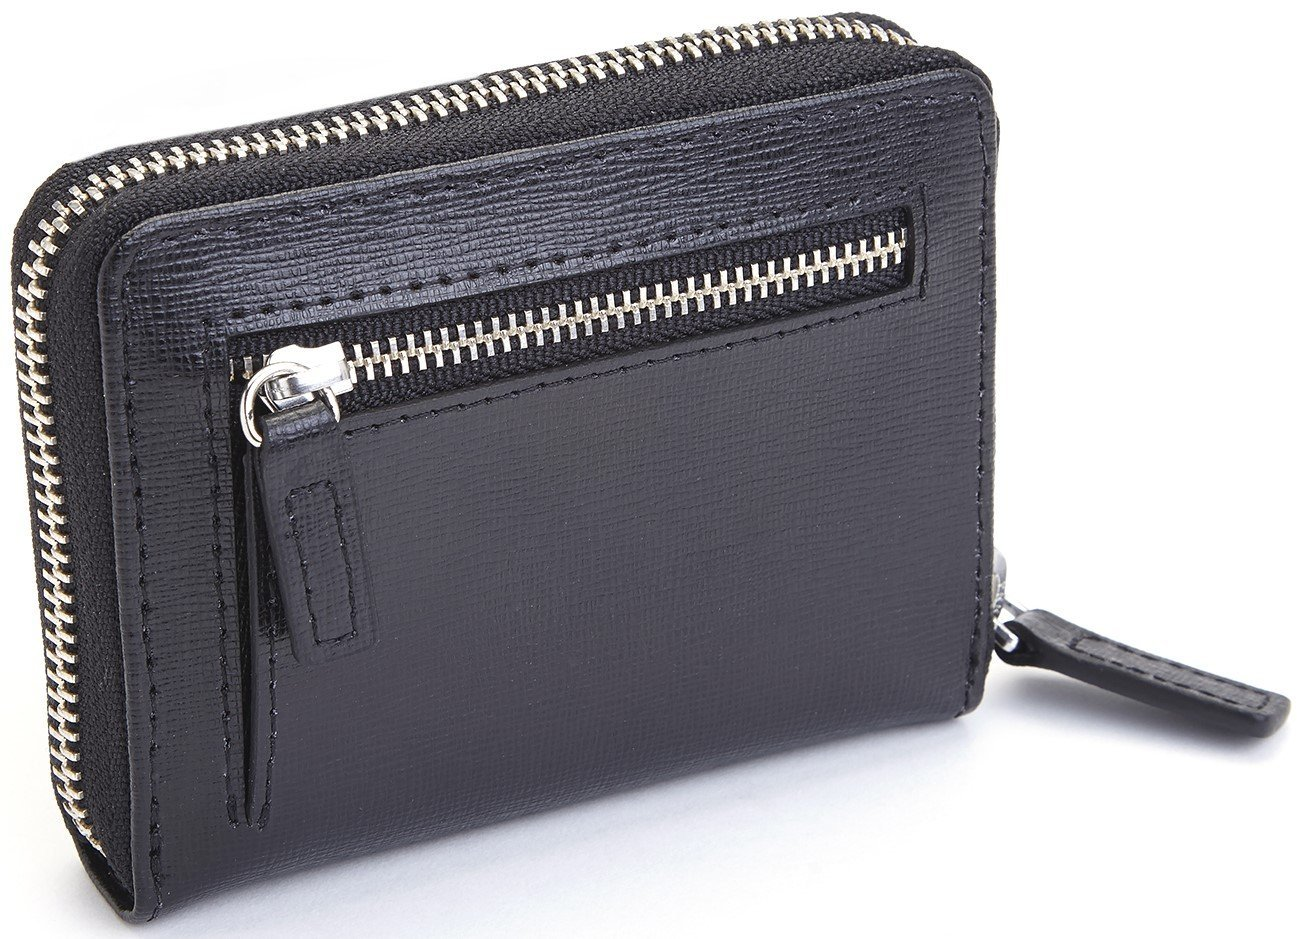 DBA Royce Leather RFID-168-BLK-2 Black EMPORIUM LEATHER Royce Leather RFID Blocking Mini Fan Wallet in Saffiano Leather